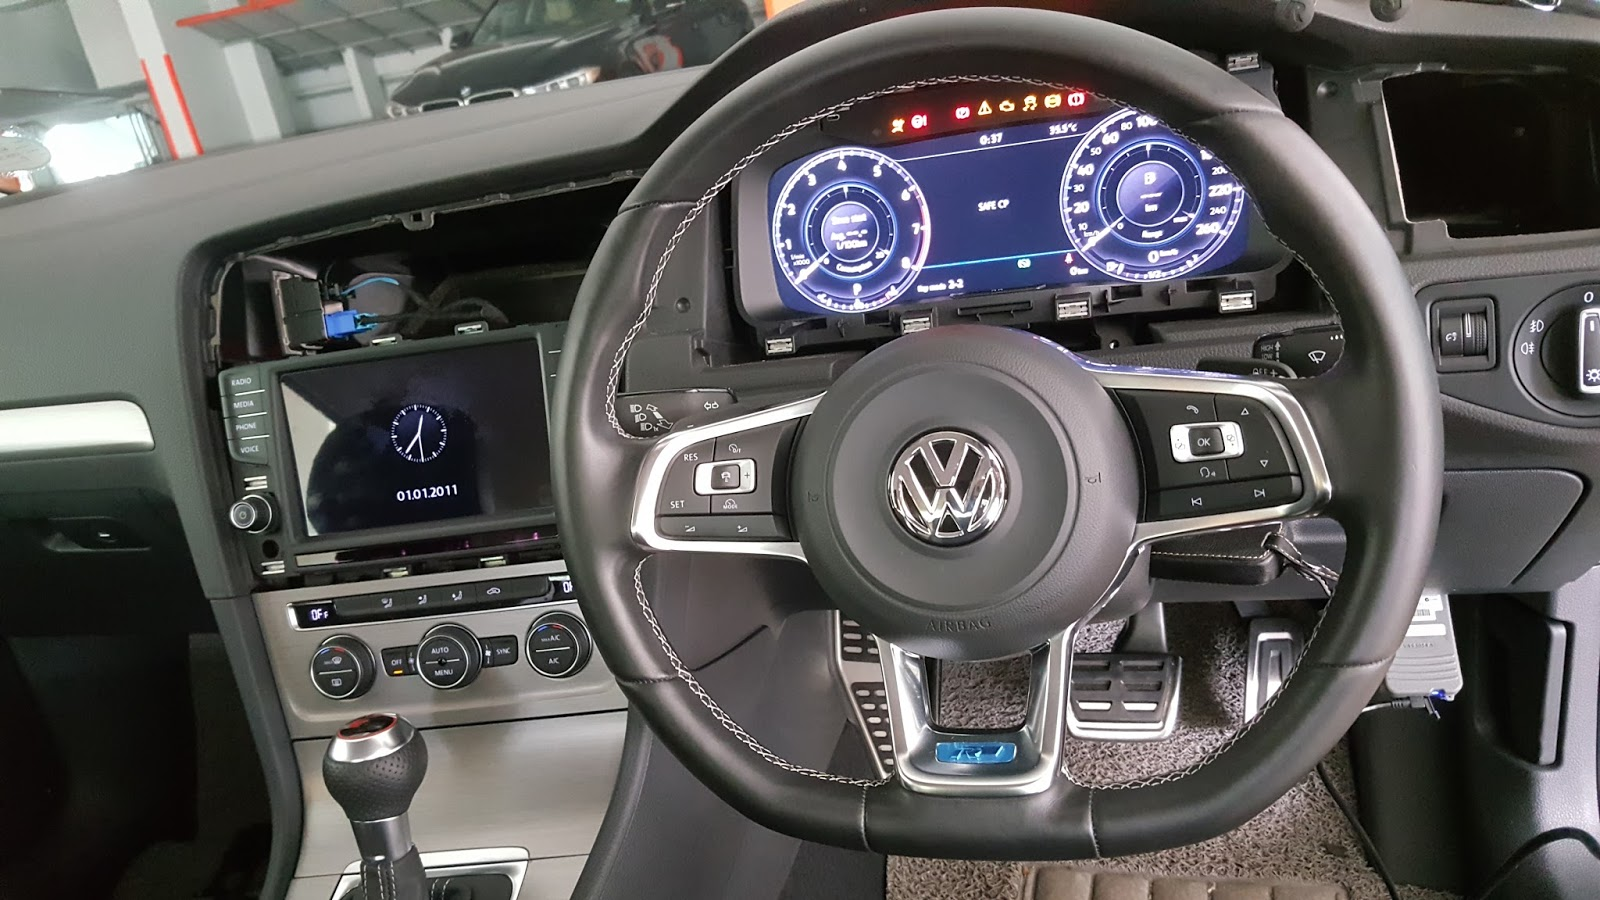 golf mk 7 to mk 7 5 instrument cluster. Black Bedroom Furniture Sets. Home Design Ideas